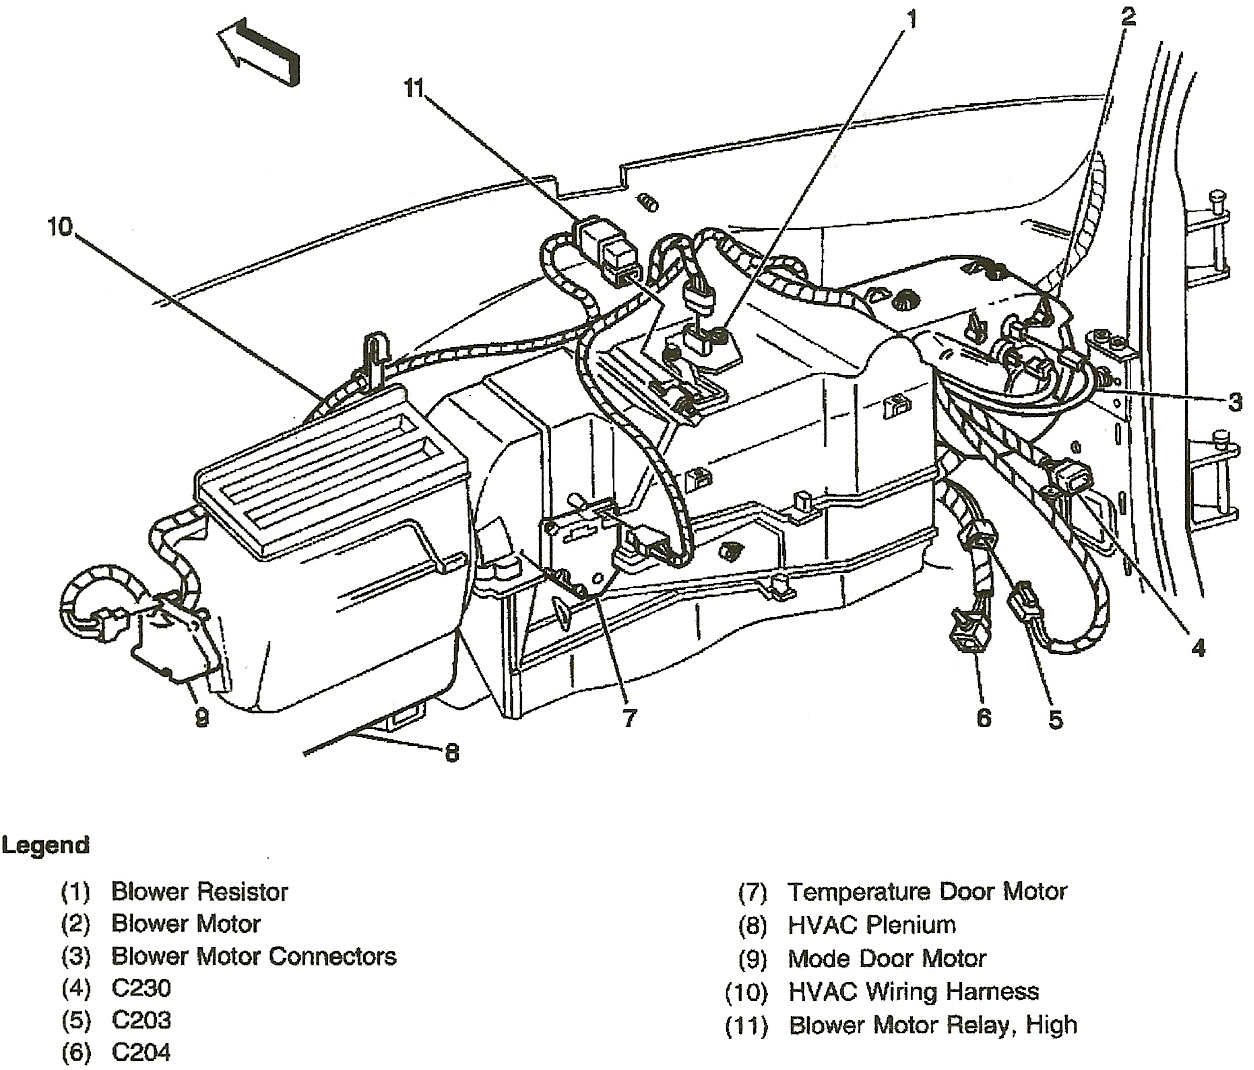 hight resolution of envoy 4 2 engine diagram wiring diagram toolbox2003 gmc envoy parts diagram engine plugs wiring diagram